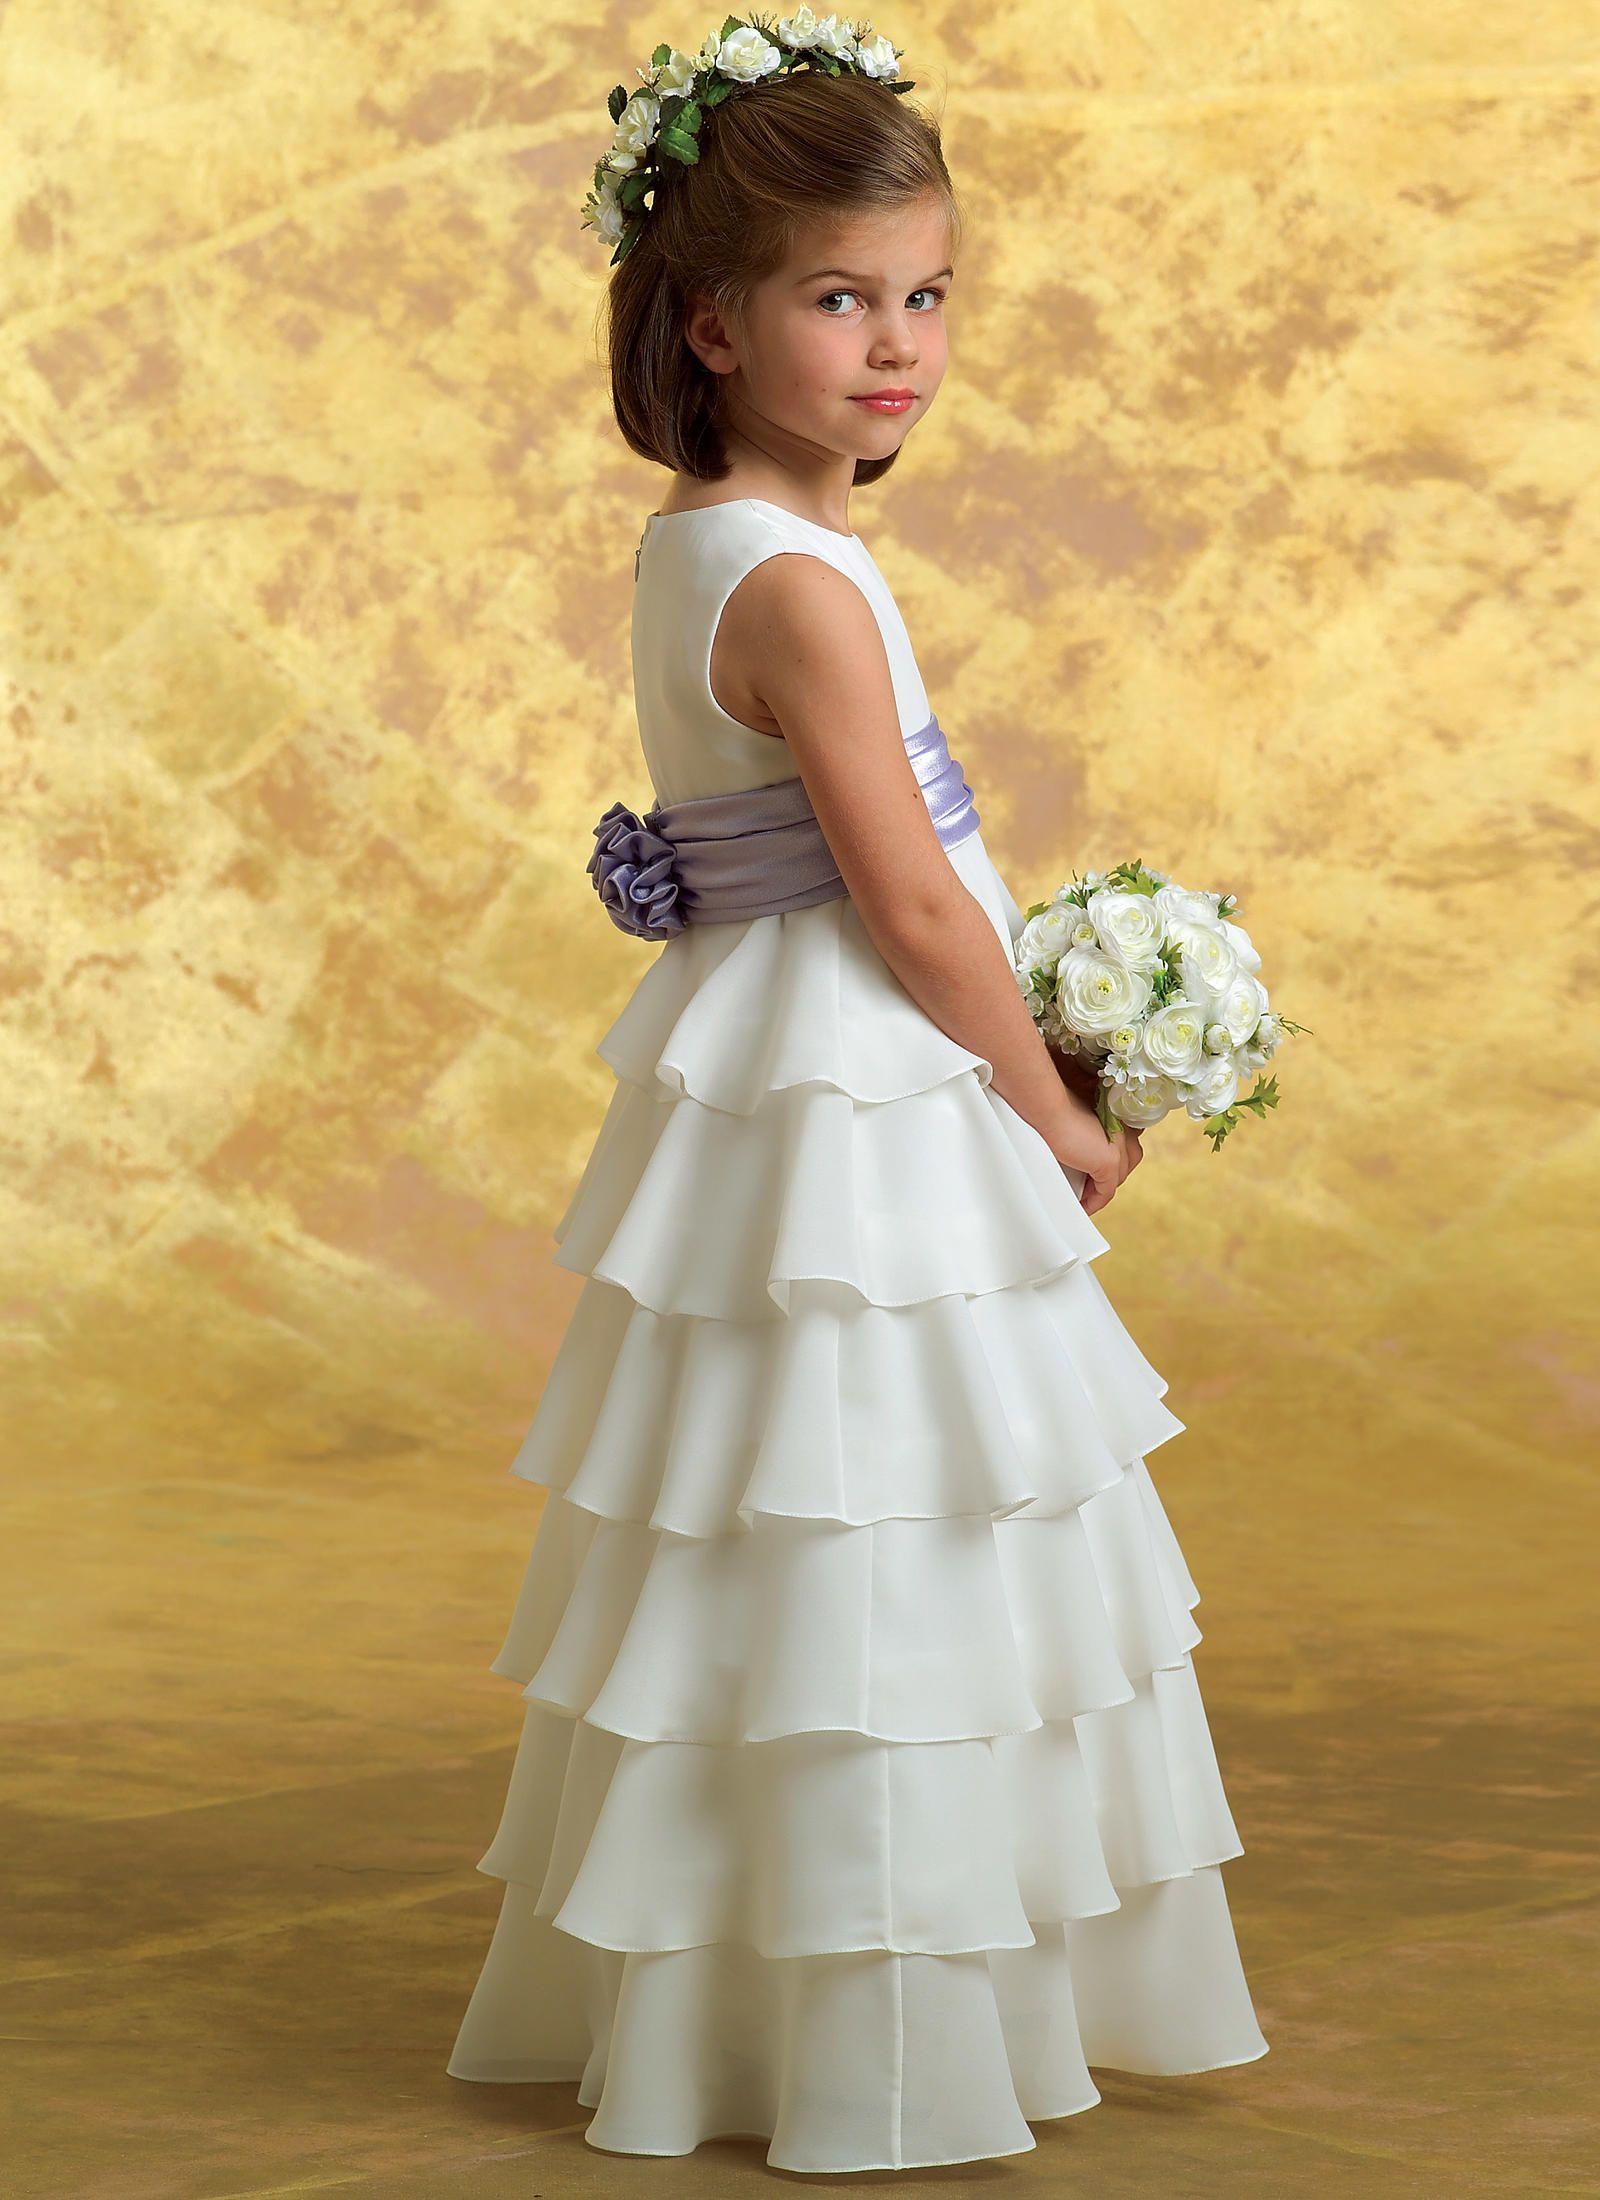 B4967 For Julia White Dress With Purple Sash Just Like The Picture